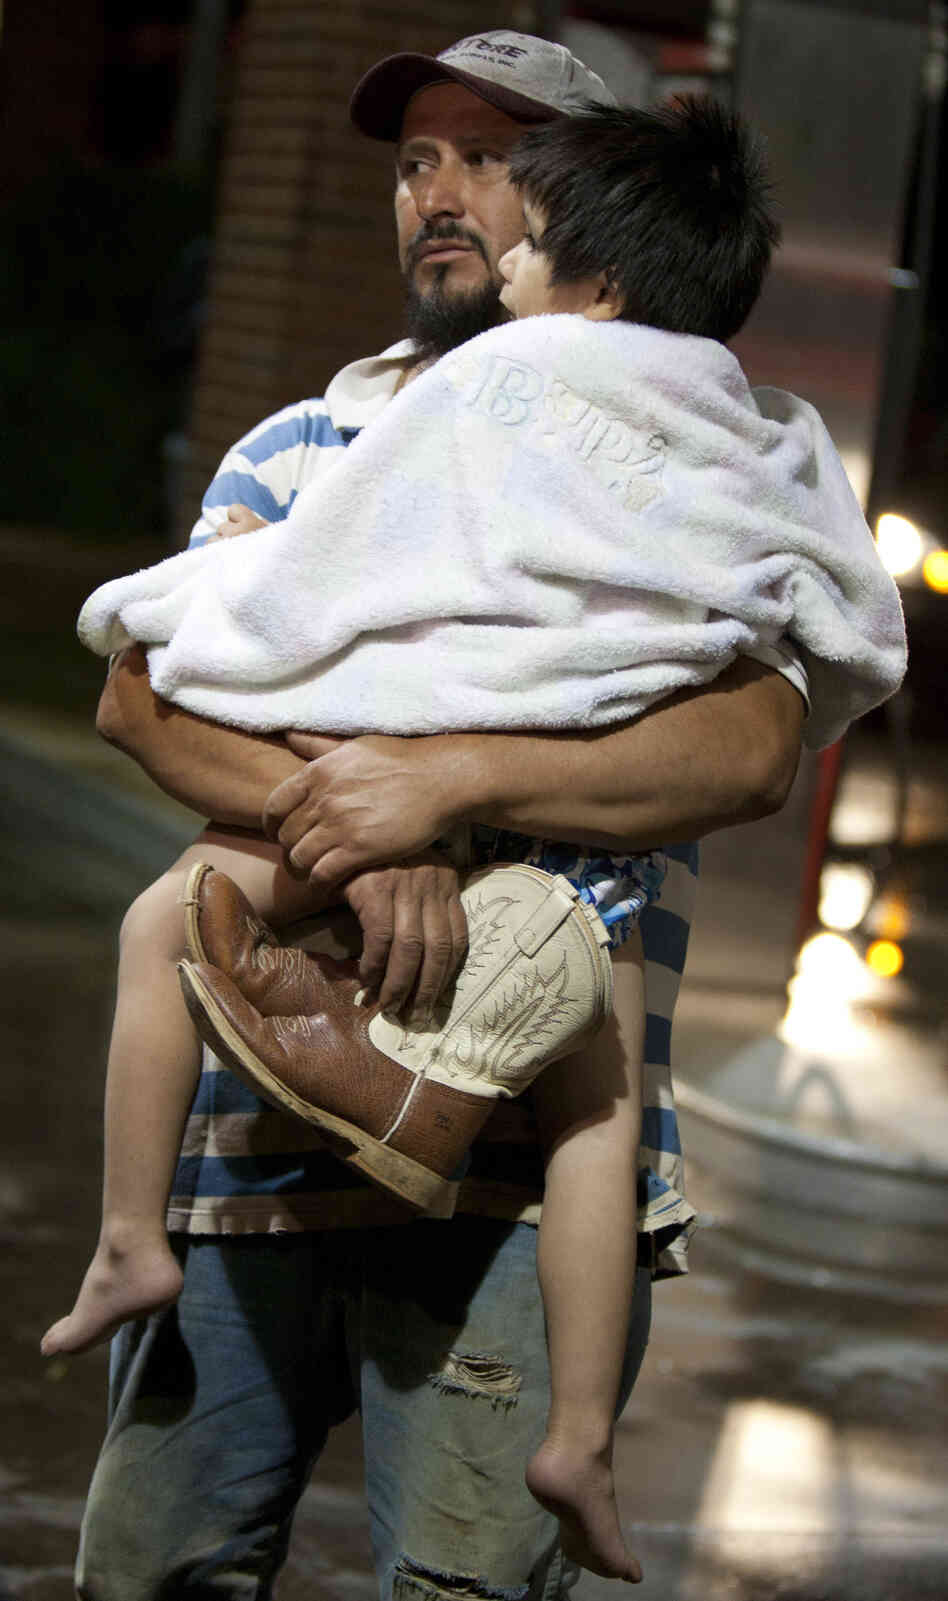 Jose and Antonio Angudo were among those evacuated from Granbury, Texas, late Wednesday after a tornado devastated th